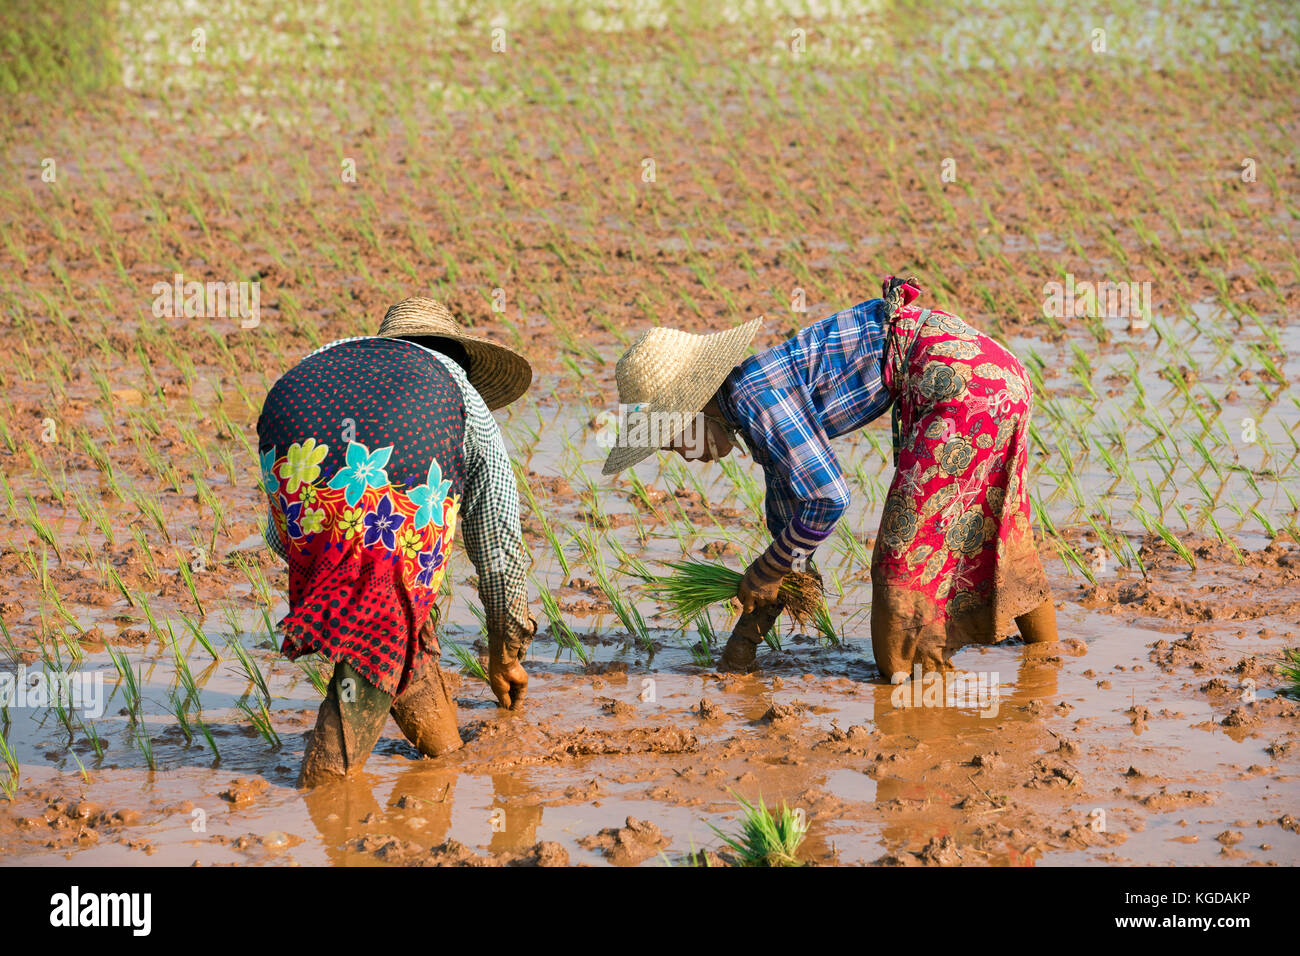 Two Burmese women with a bamboo hats, planting rice plants in wet rice field in the Taunggyi District, Shan State, - Stock Image